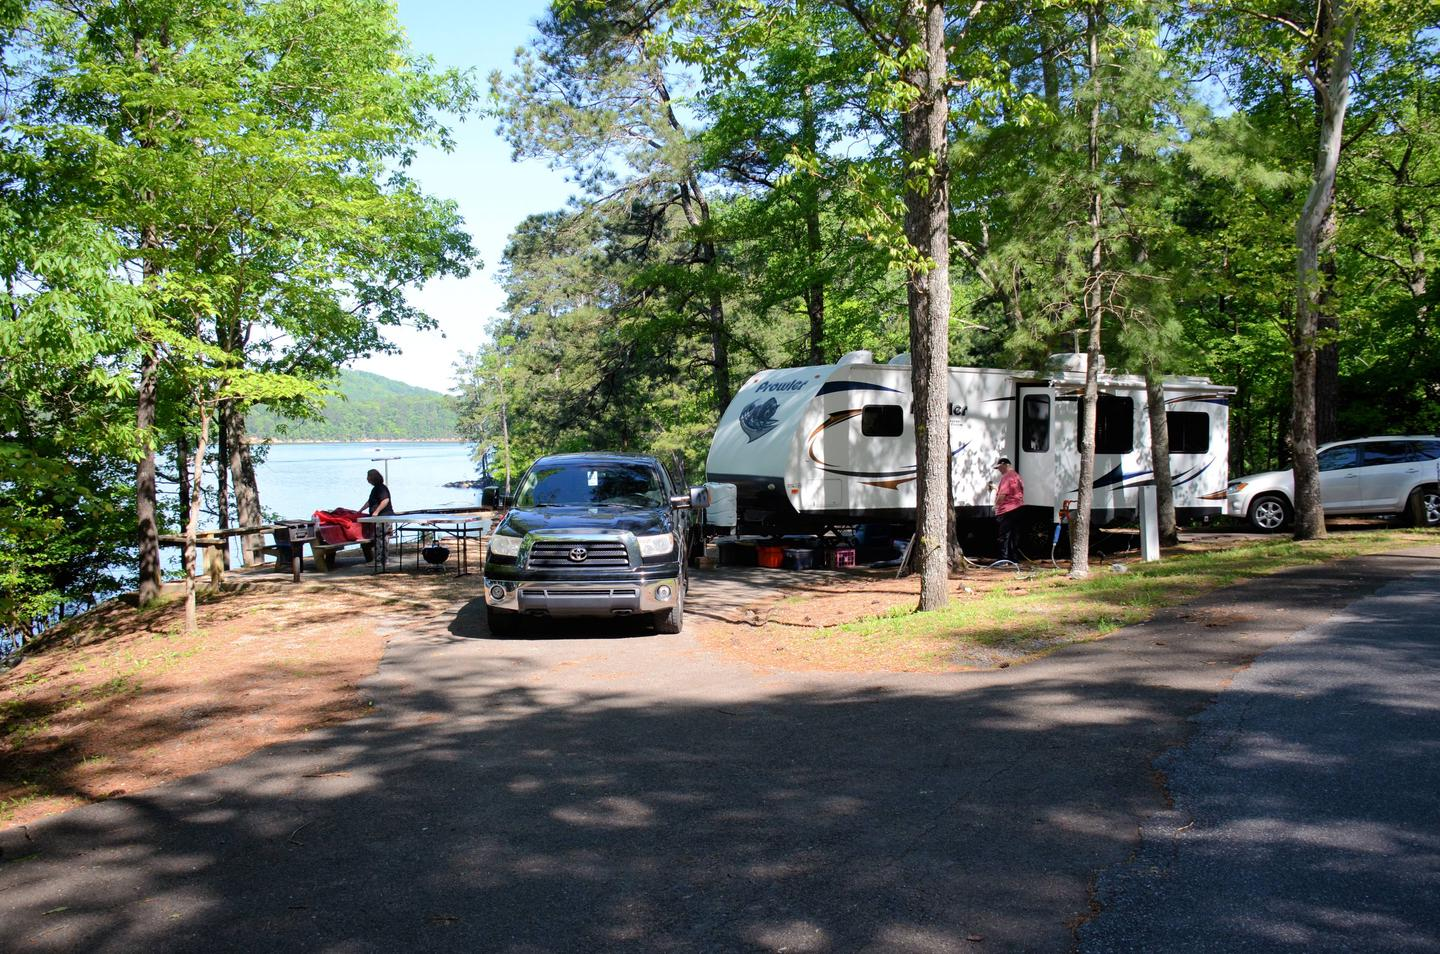 Pull-thru exit, driveway slope, awning-side clearance.McKinney Campground, campsite 44.